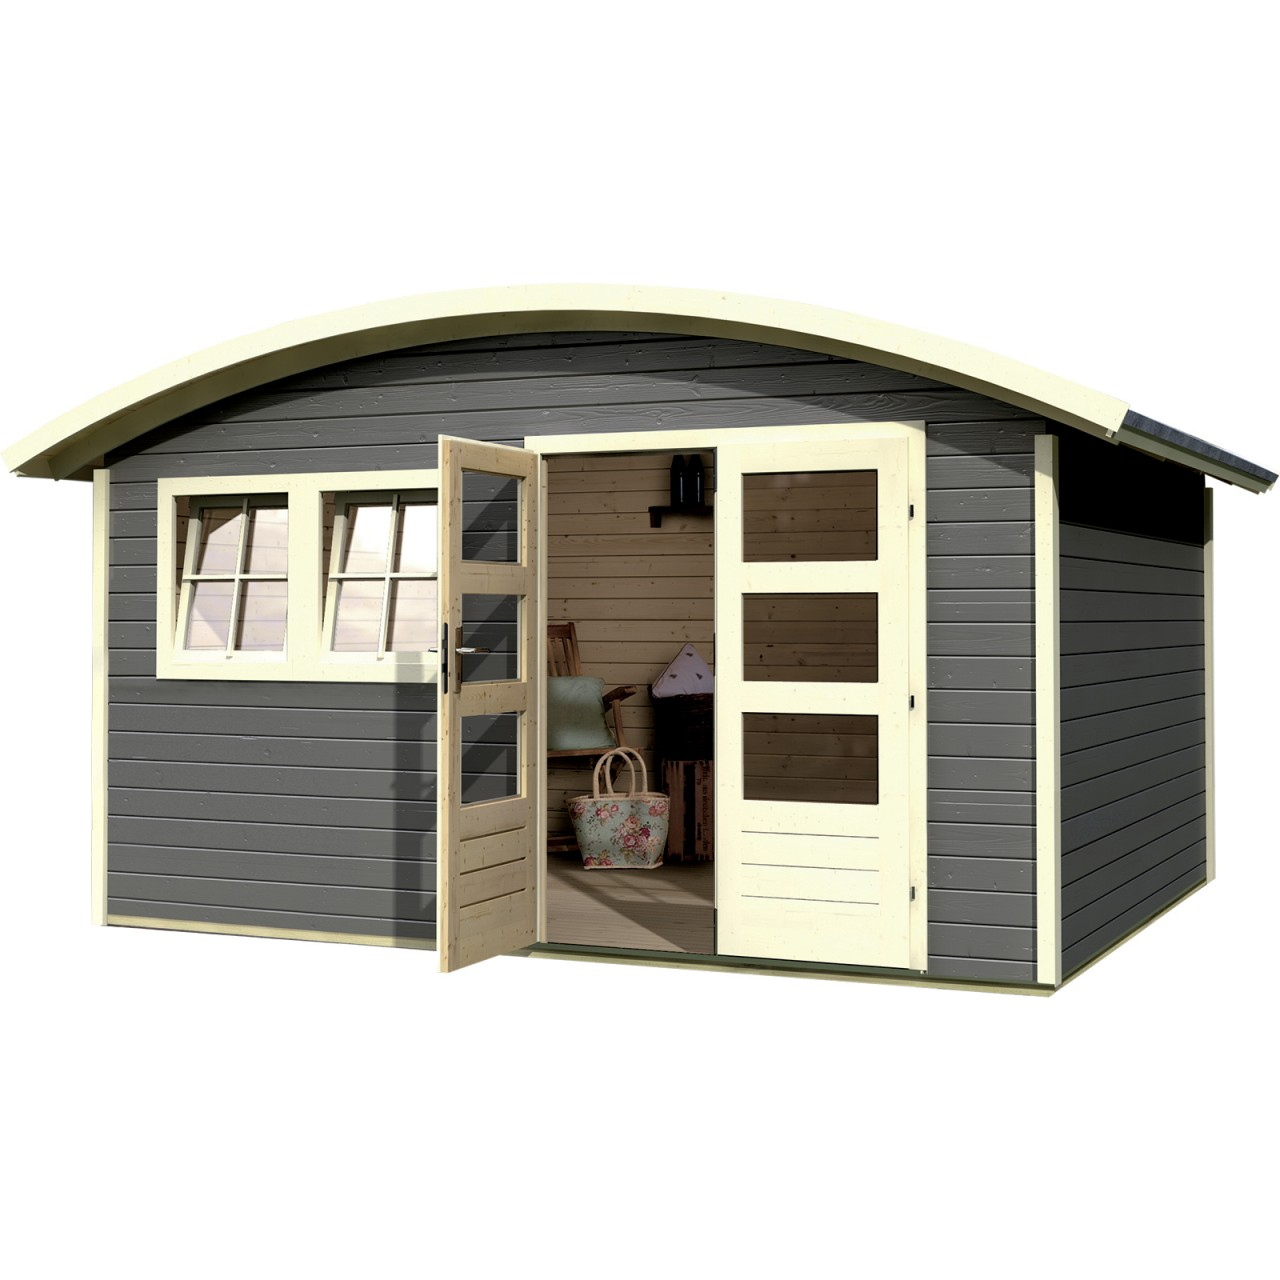 gartenhaus tonnendachhaus friedland 2 terragrau 3 91 x 3 06 m mein schrebergarten. Black Bedroom Furniture Sets. Home Design Ideas